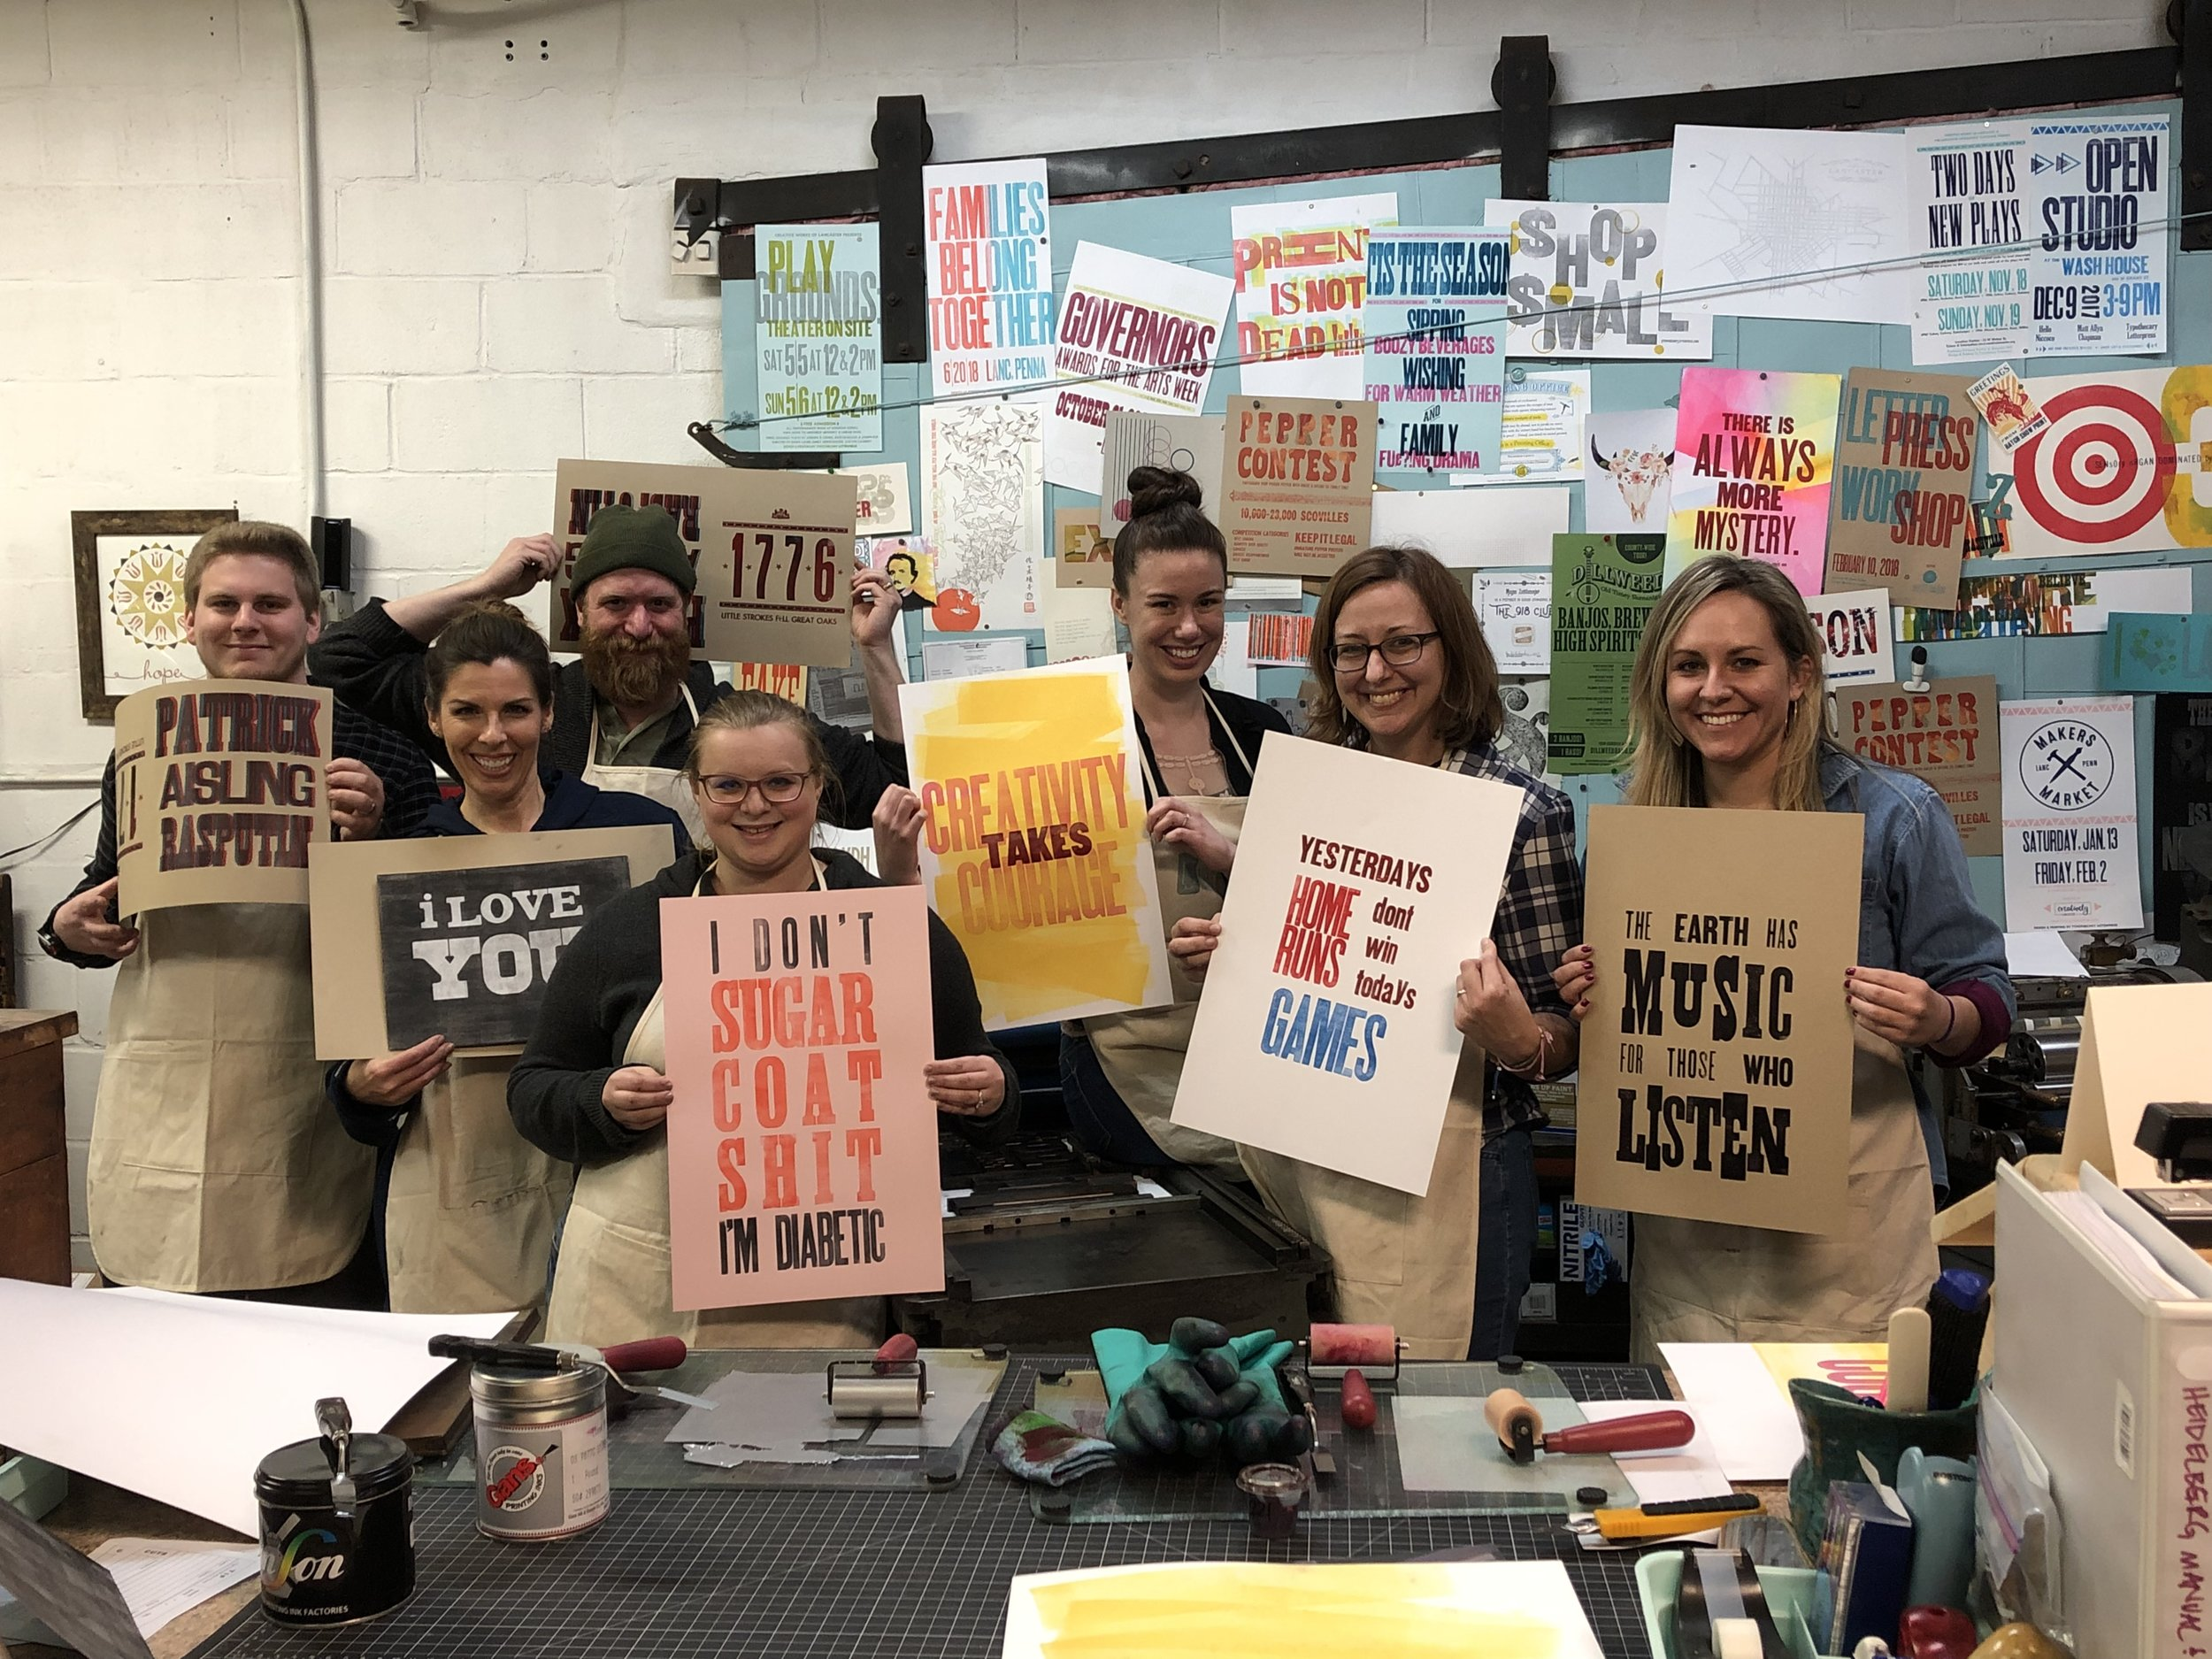 Team Building - Experience the art of letterpress printing while having some fun with your team and investing in the future of your company at the same time.